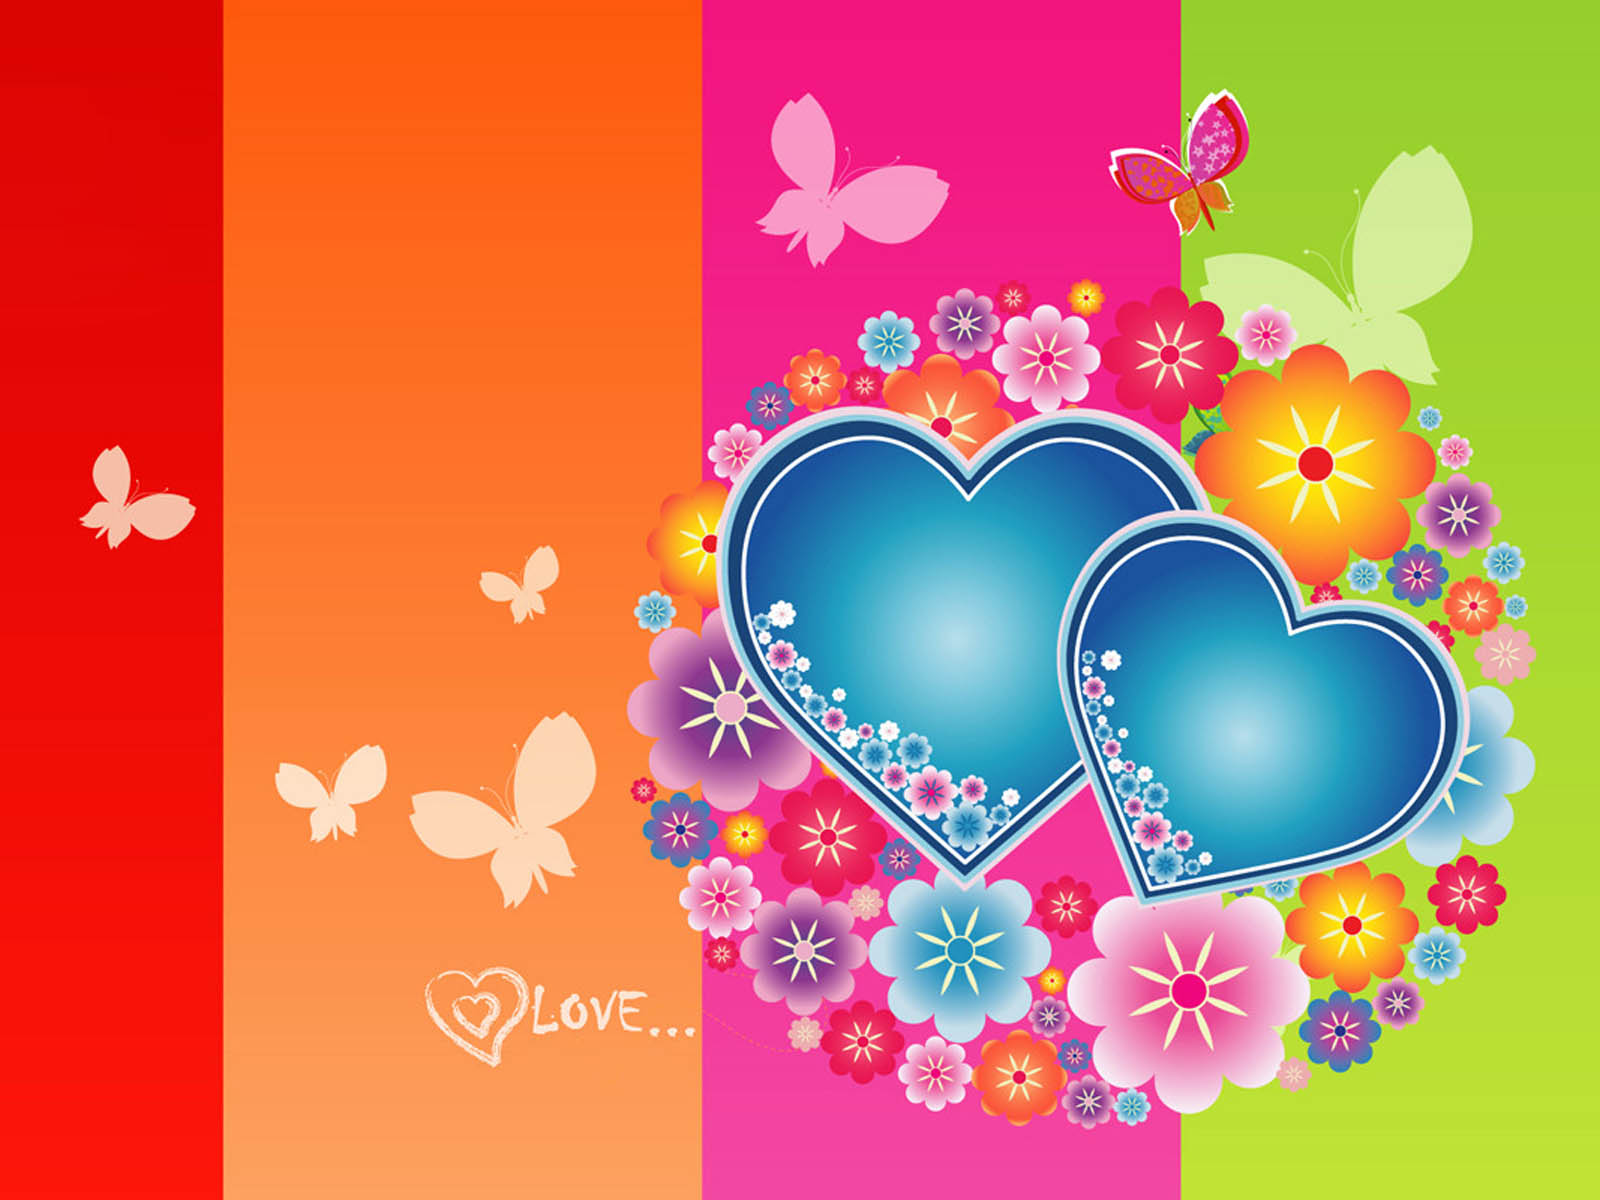 Lovely Love Design Wallpaper : wallpapers: Love Heart Wallpapers